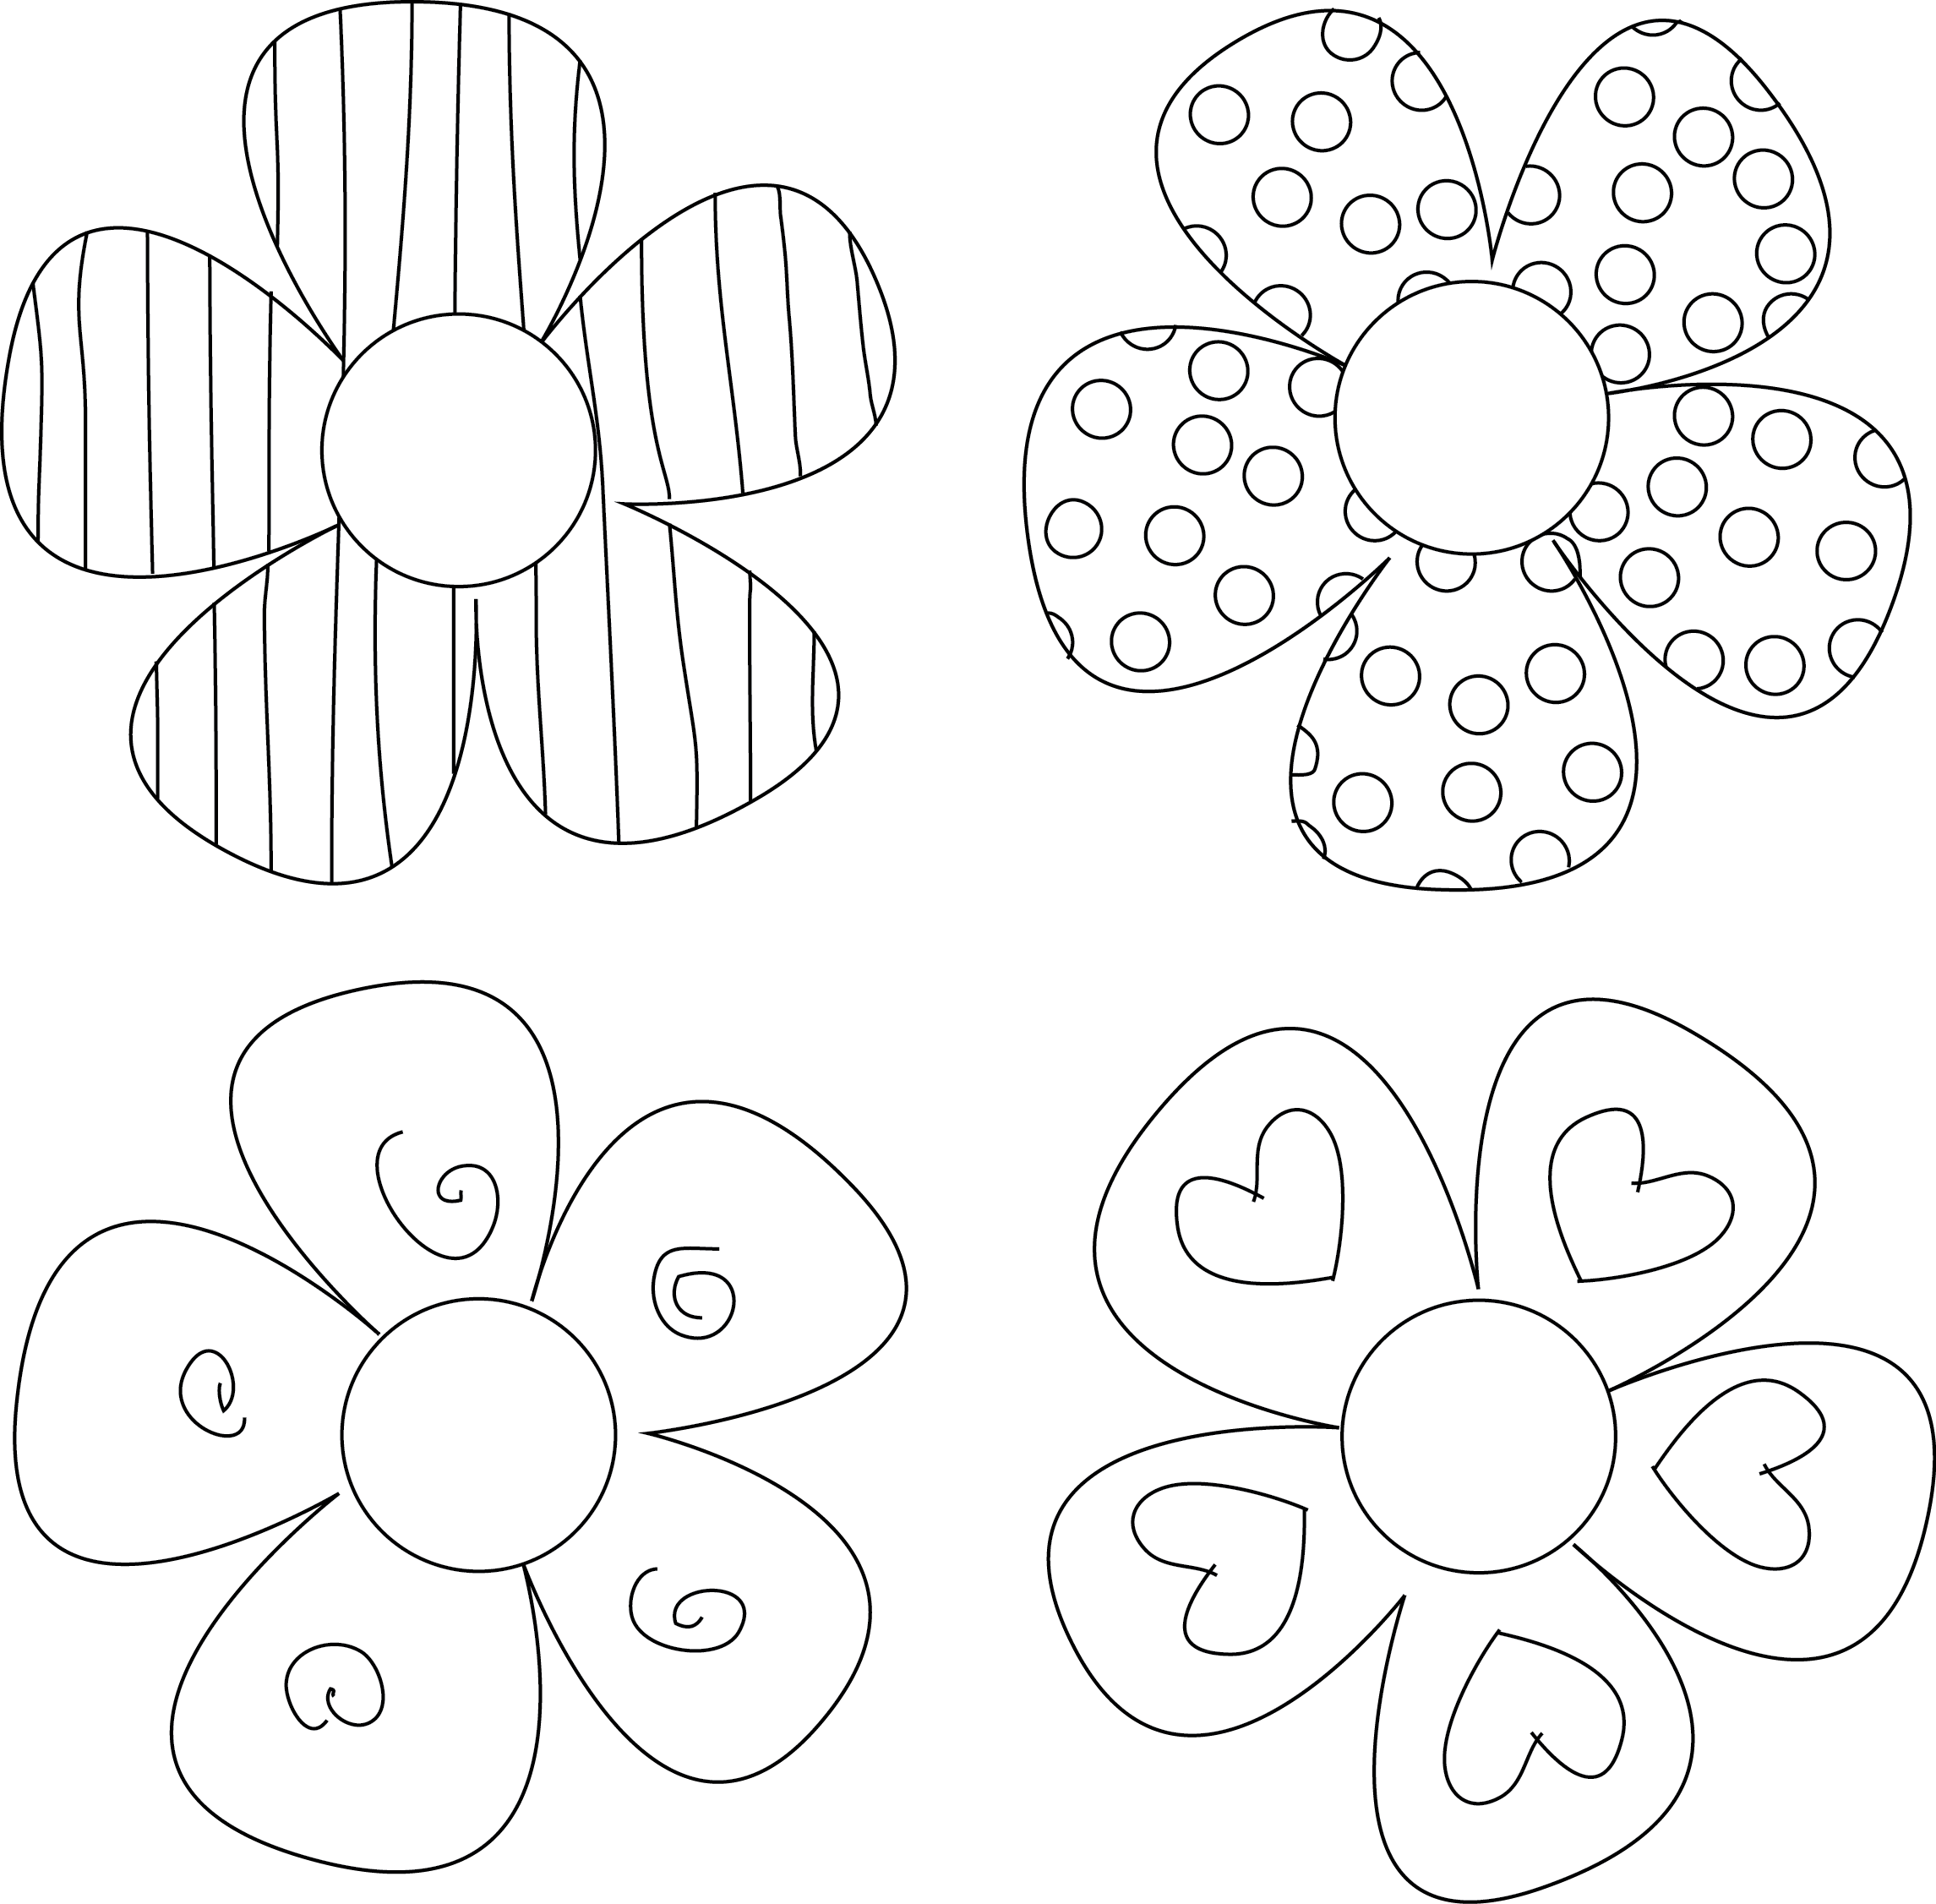 graphic relating to Flowers Printable named Do it yourself Flower Tutorials Your self Really should Test 1 Applique models